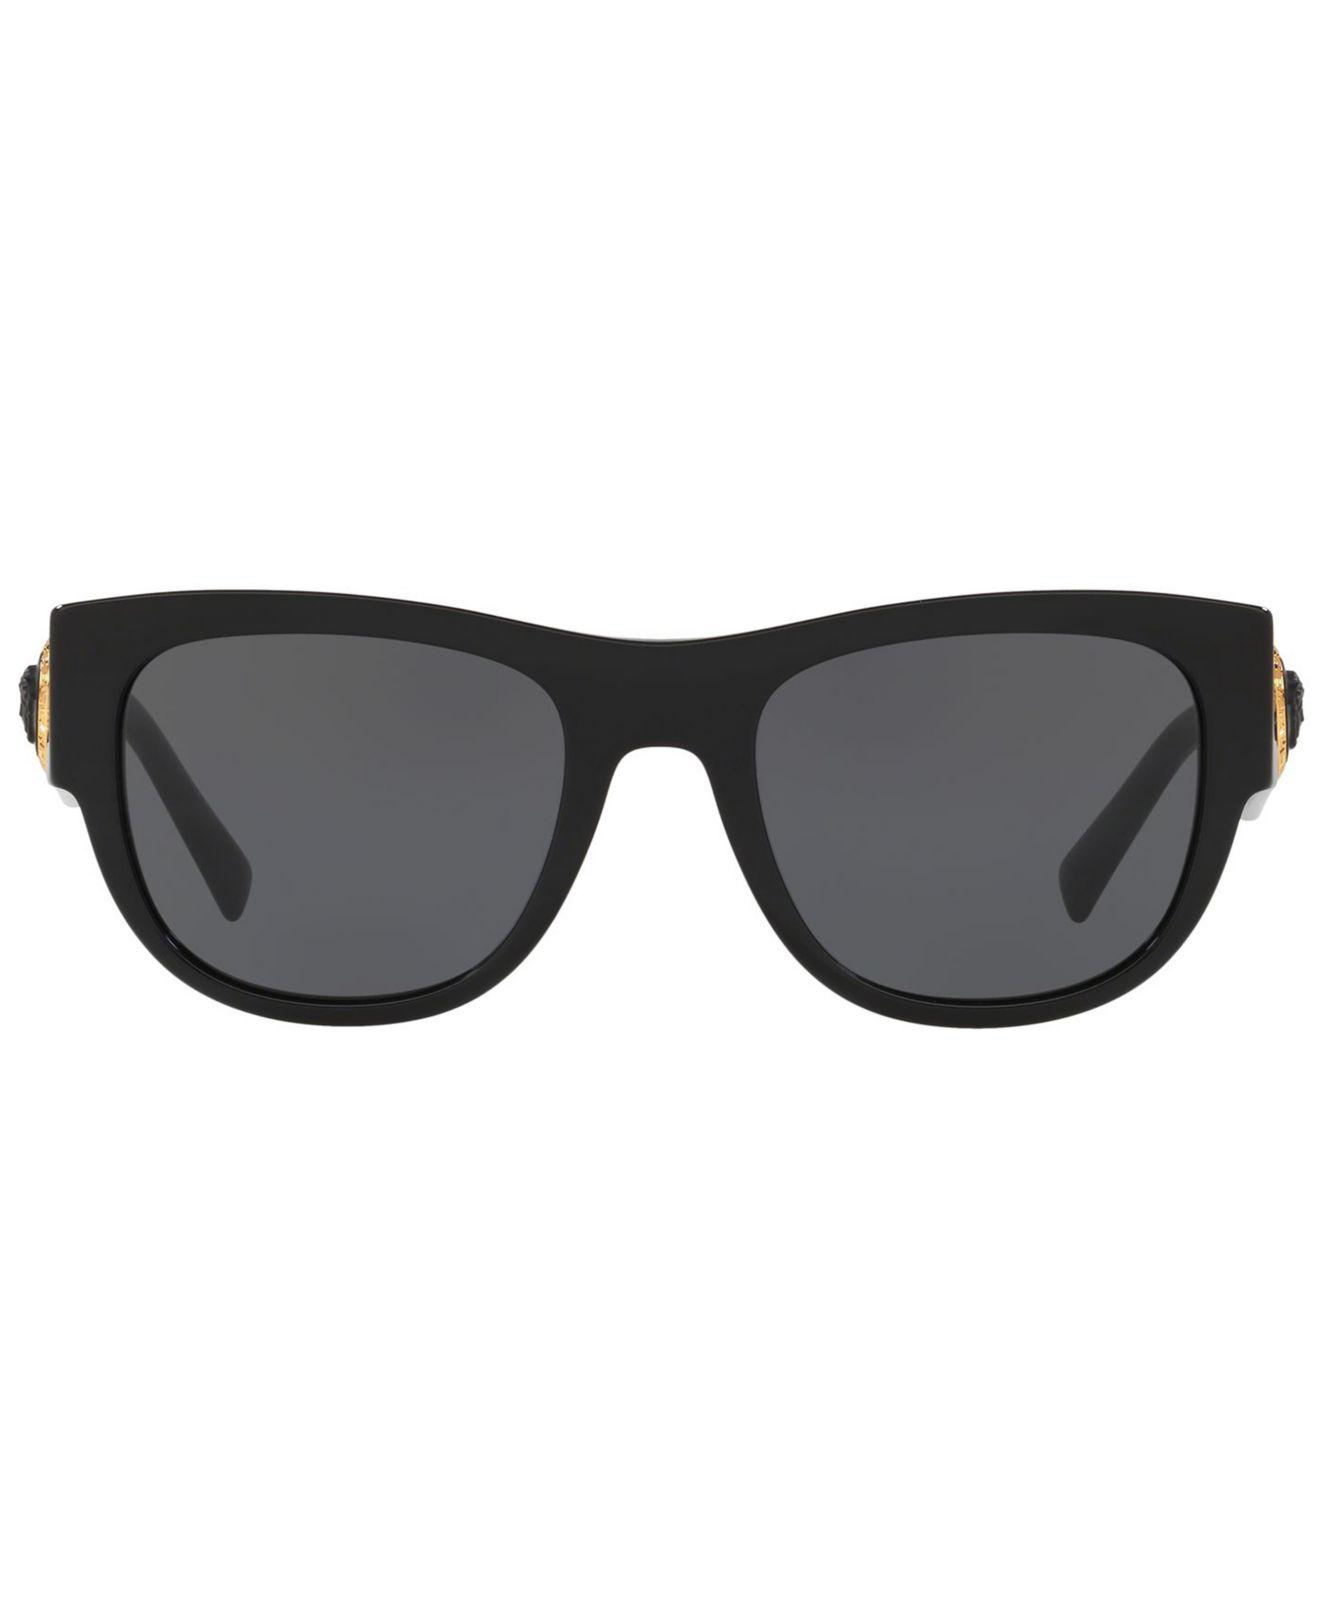 e3156c8000 Lyst - Versace 4359 Rectangle Sunglasses in Black for Men - Save 13%